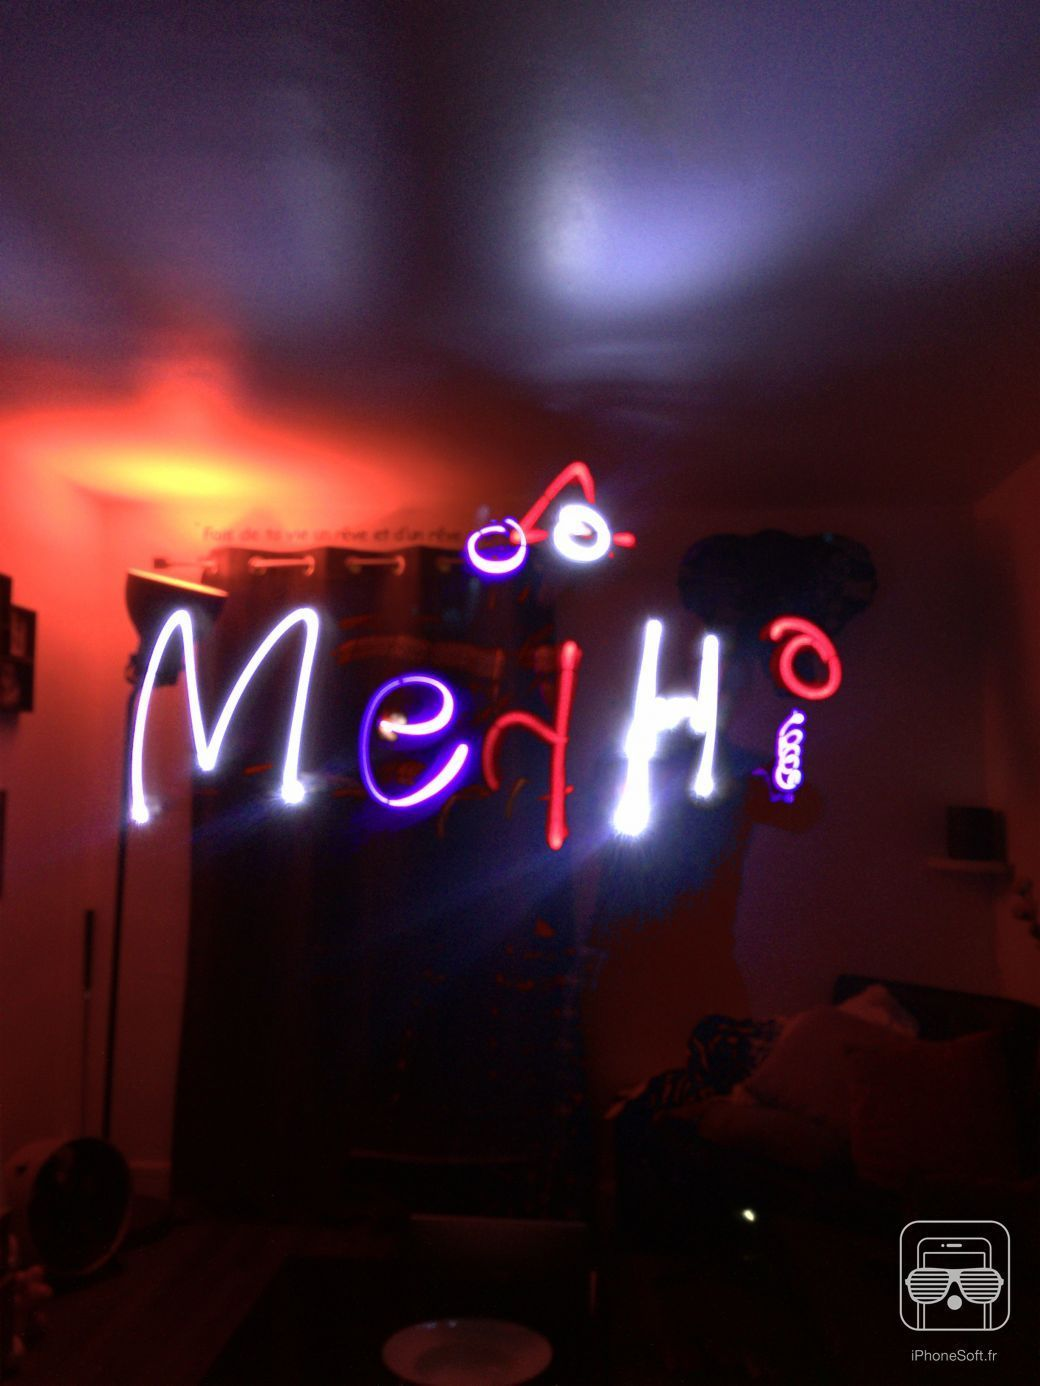 medhi-light-painting-name-0.jpg